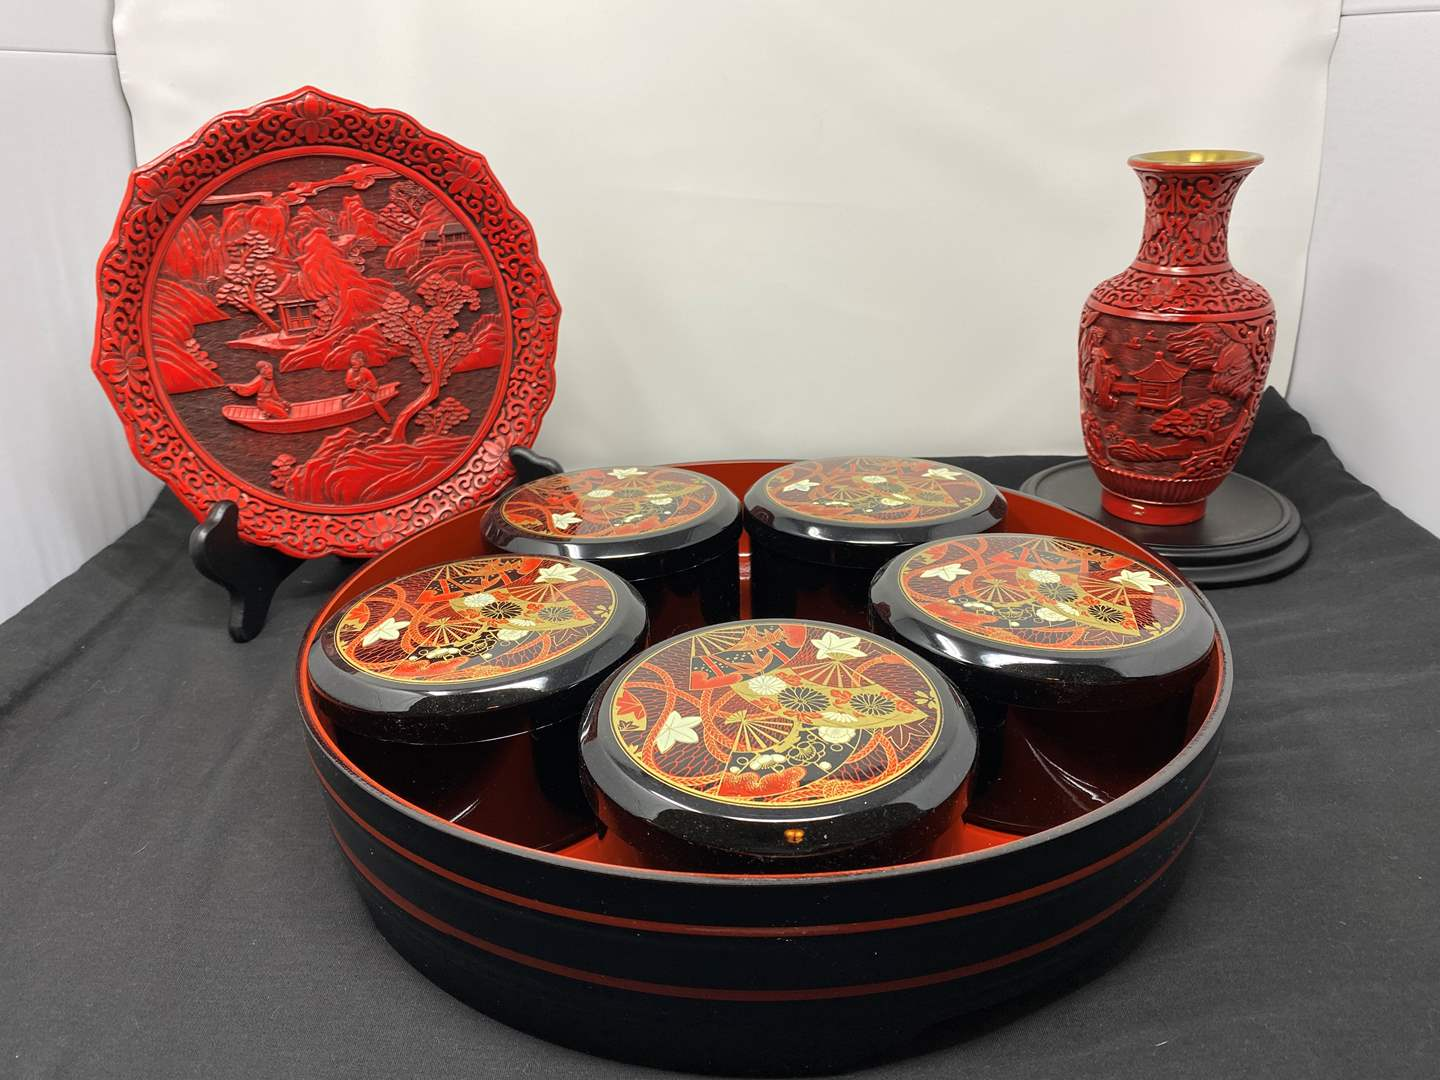 Lot # 12 - Asian Tray, Ornate Red Brass Vase, Ornate Red Plate (main image)